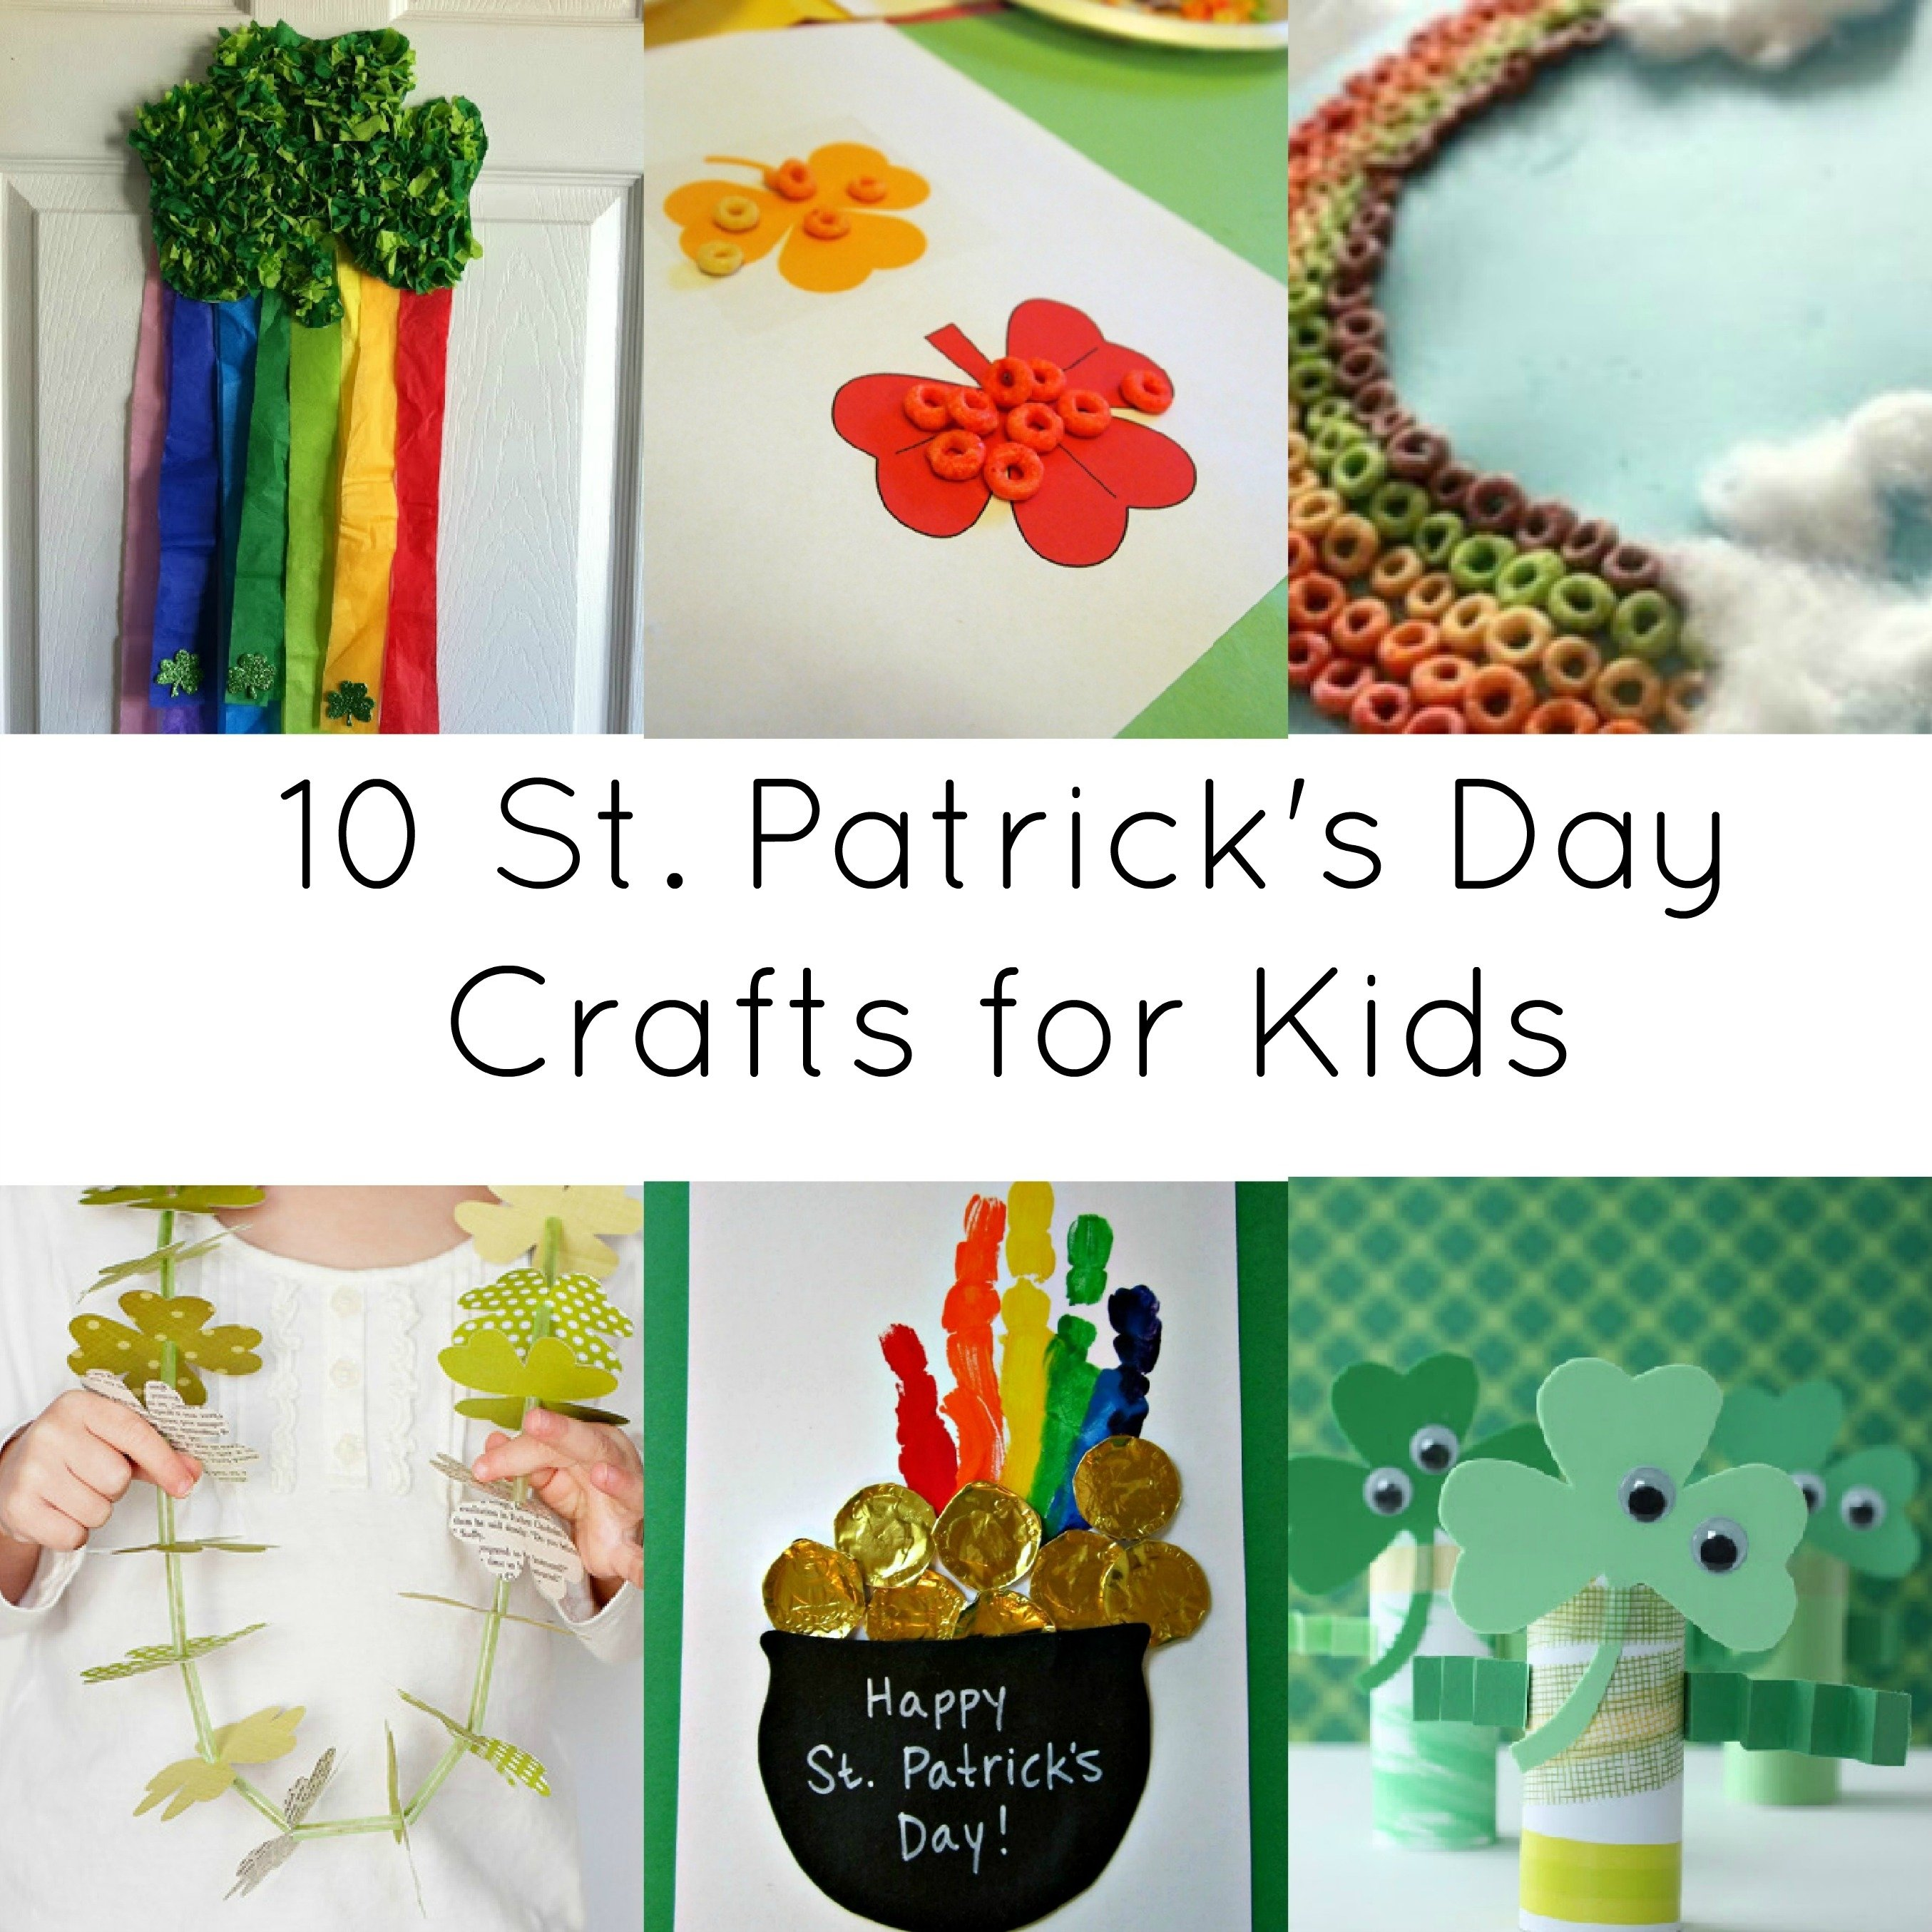 activities for kids: 10 st. patrick day crafts | crystalandcomp